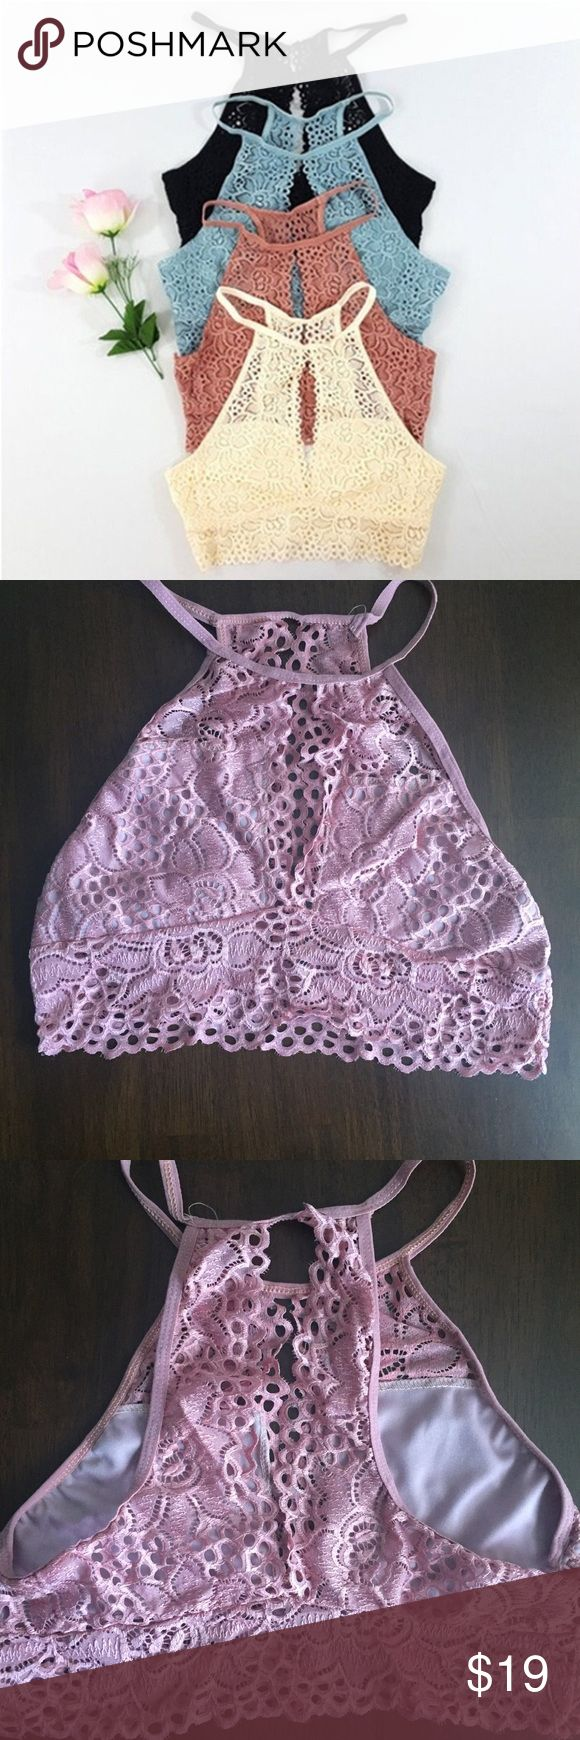 Pink Lace Bralette Crop Top Beautiful. Small amount of padding to decrease transparency. Intimates & Sleepwear Bras